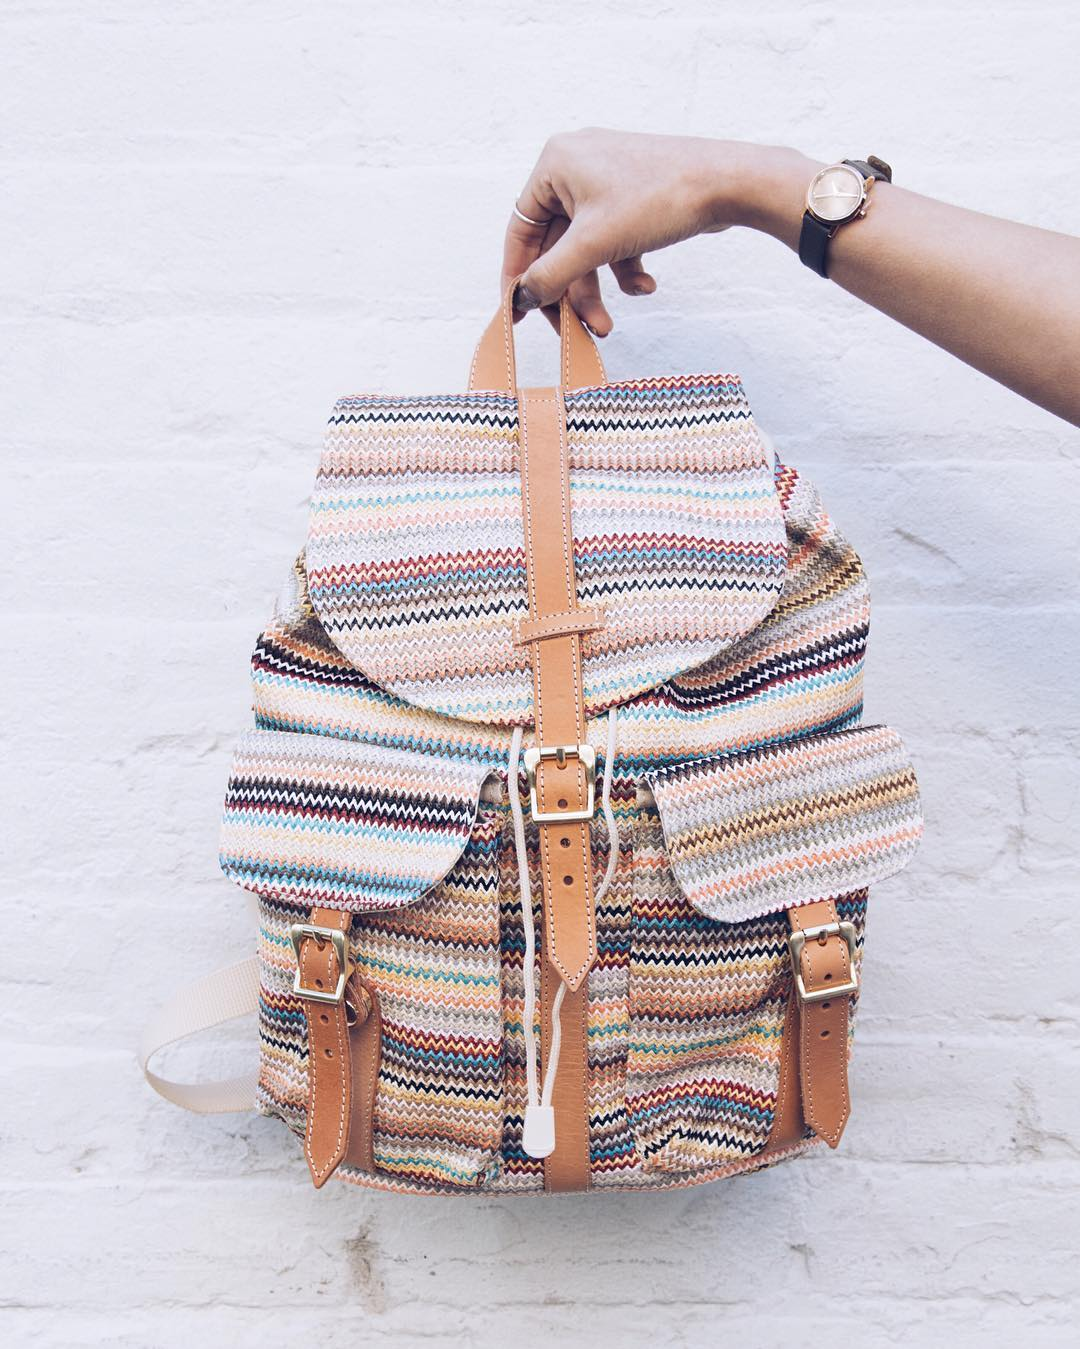 Designer Backpack Handbag